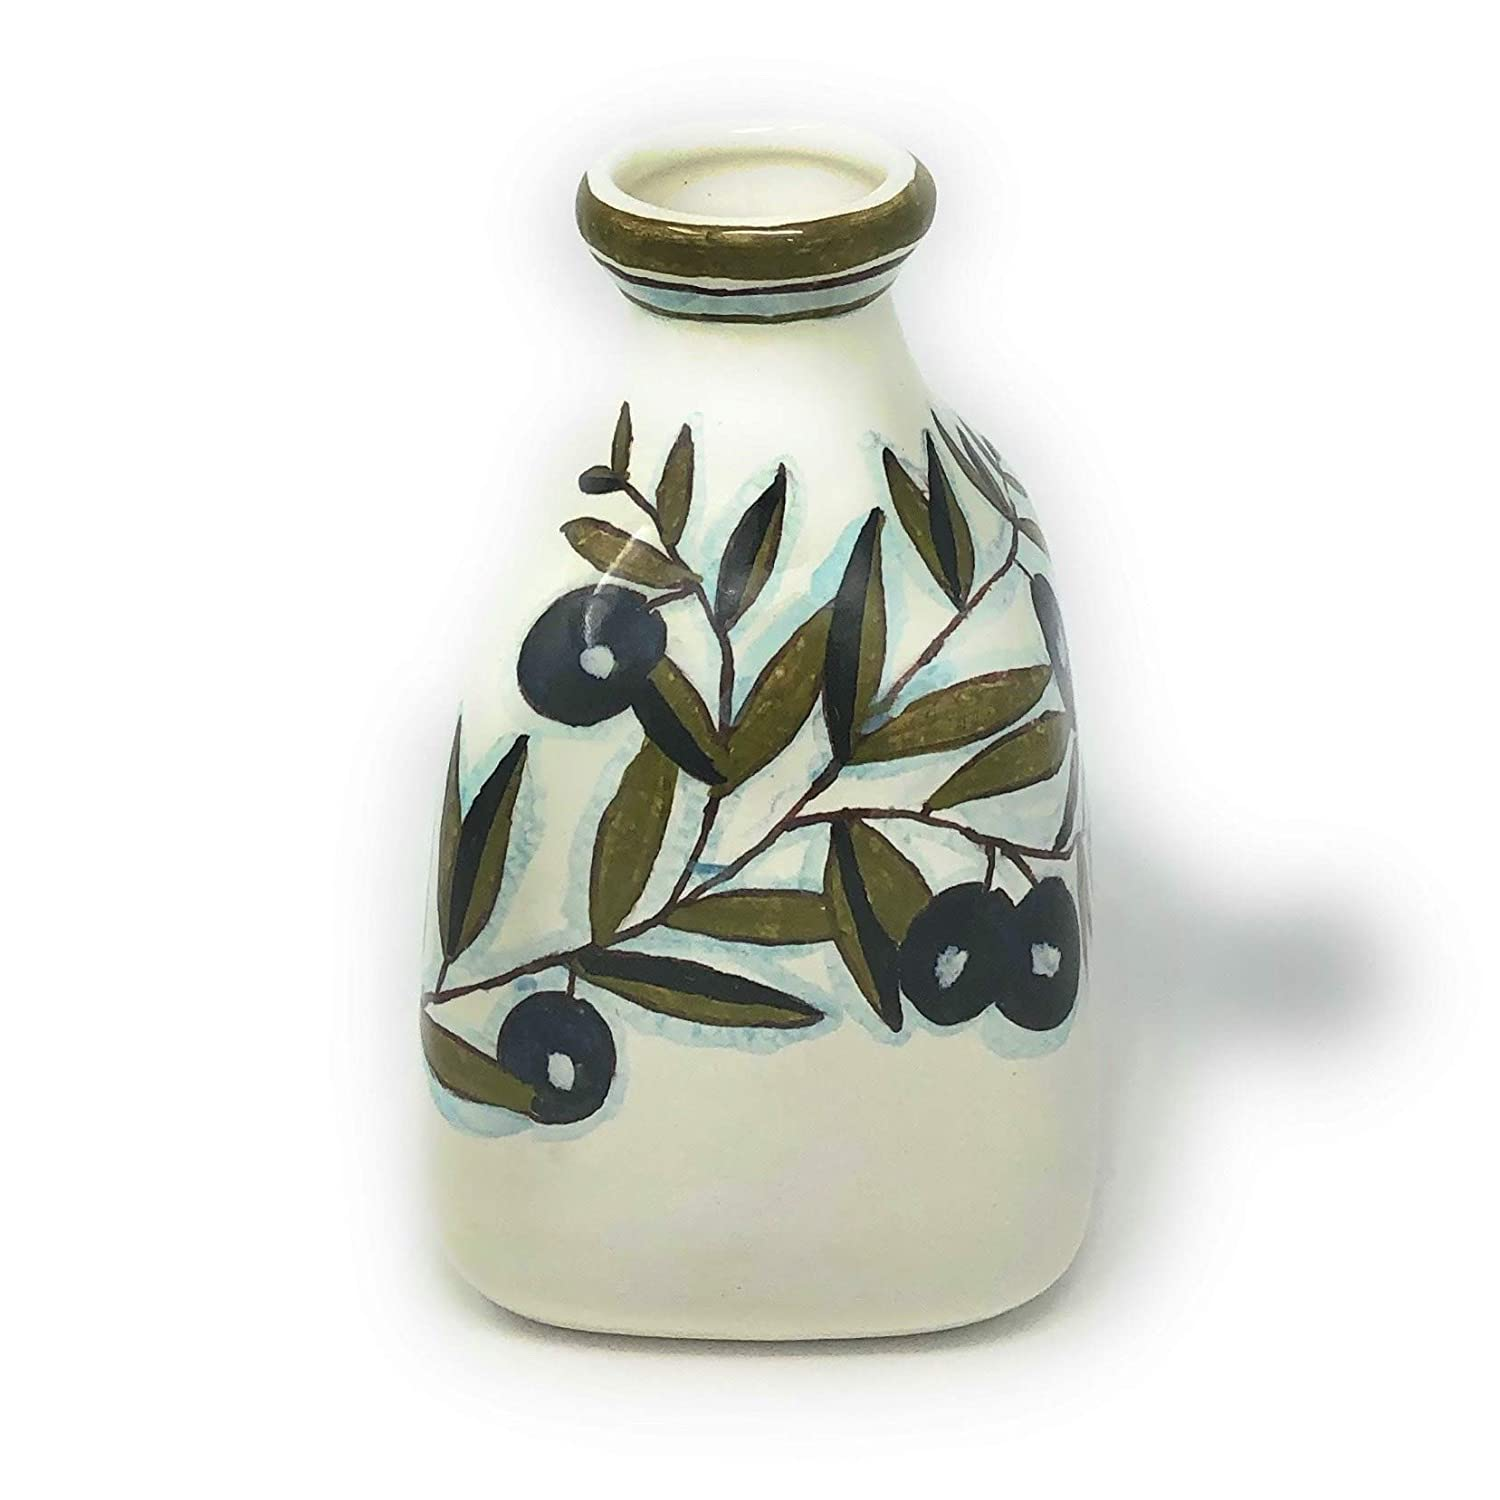 Italian Ceramic Art Herbs or Flower Vase Pottery Decorated Country Hand Painted Made in ITALY Tuscan CERAMICHE PARRINI